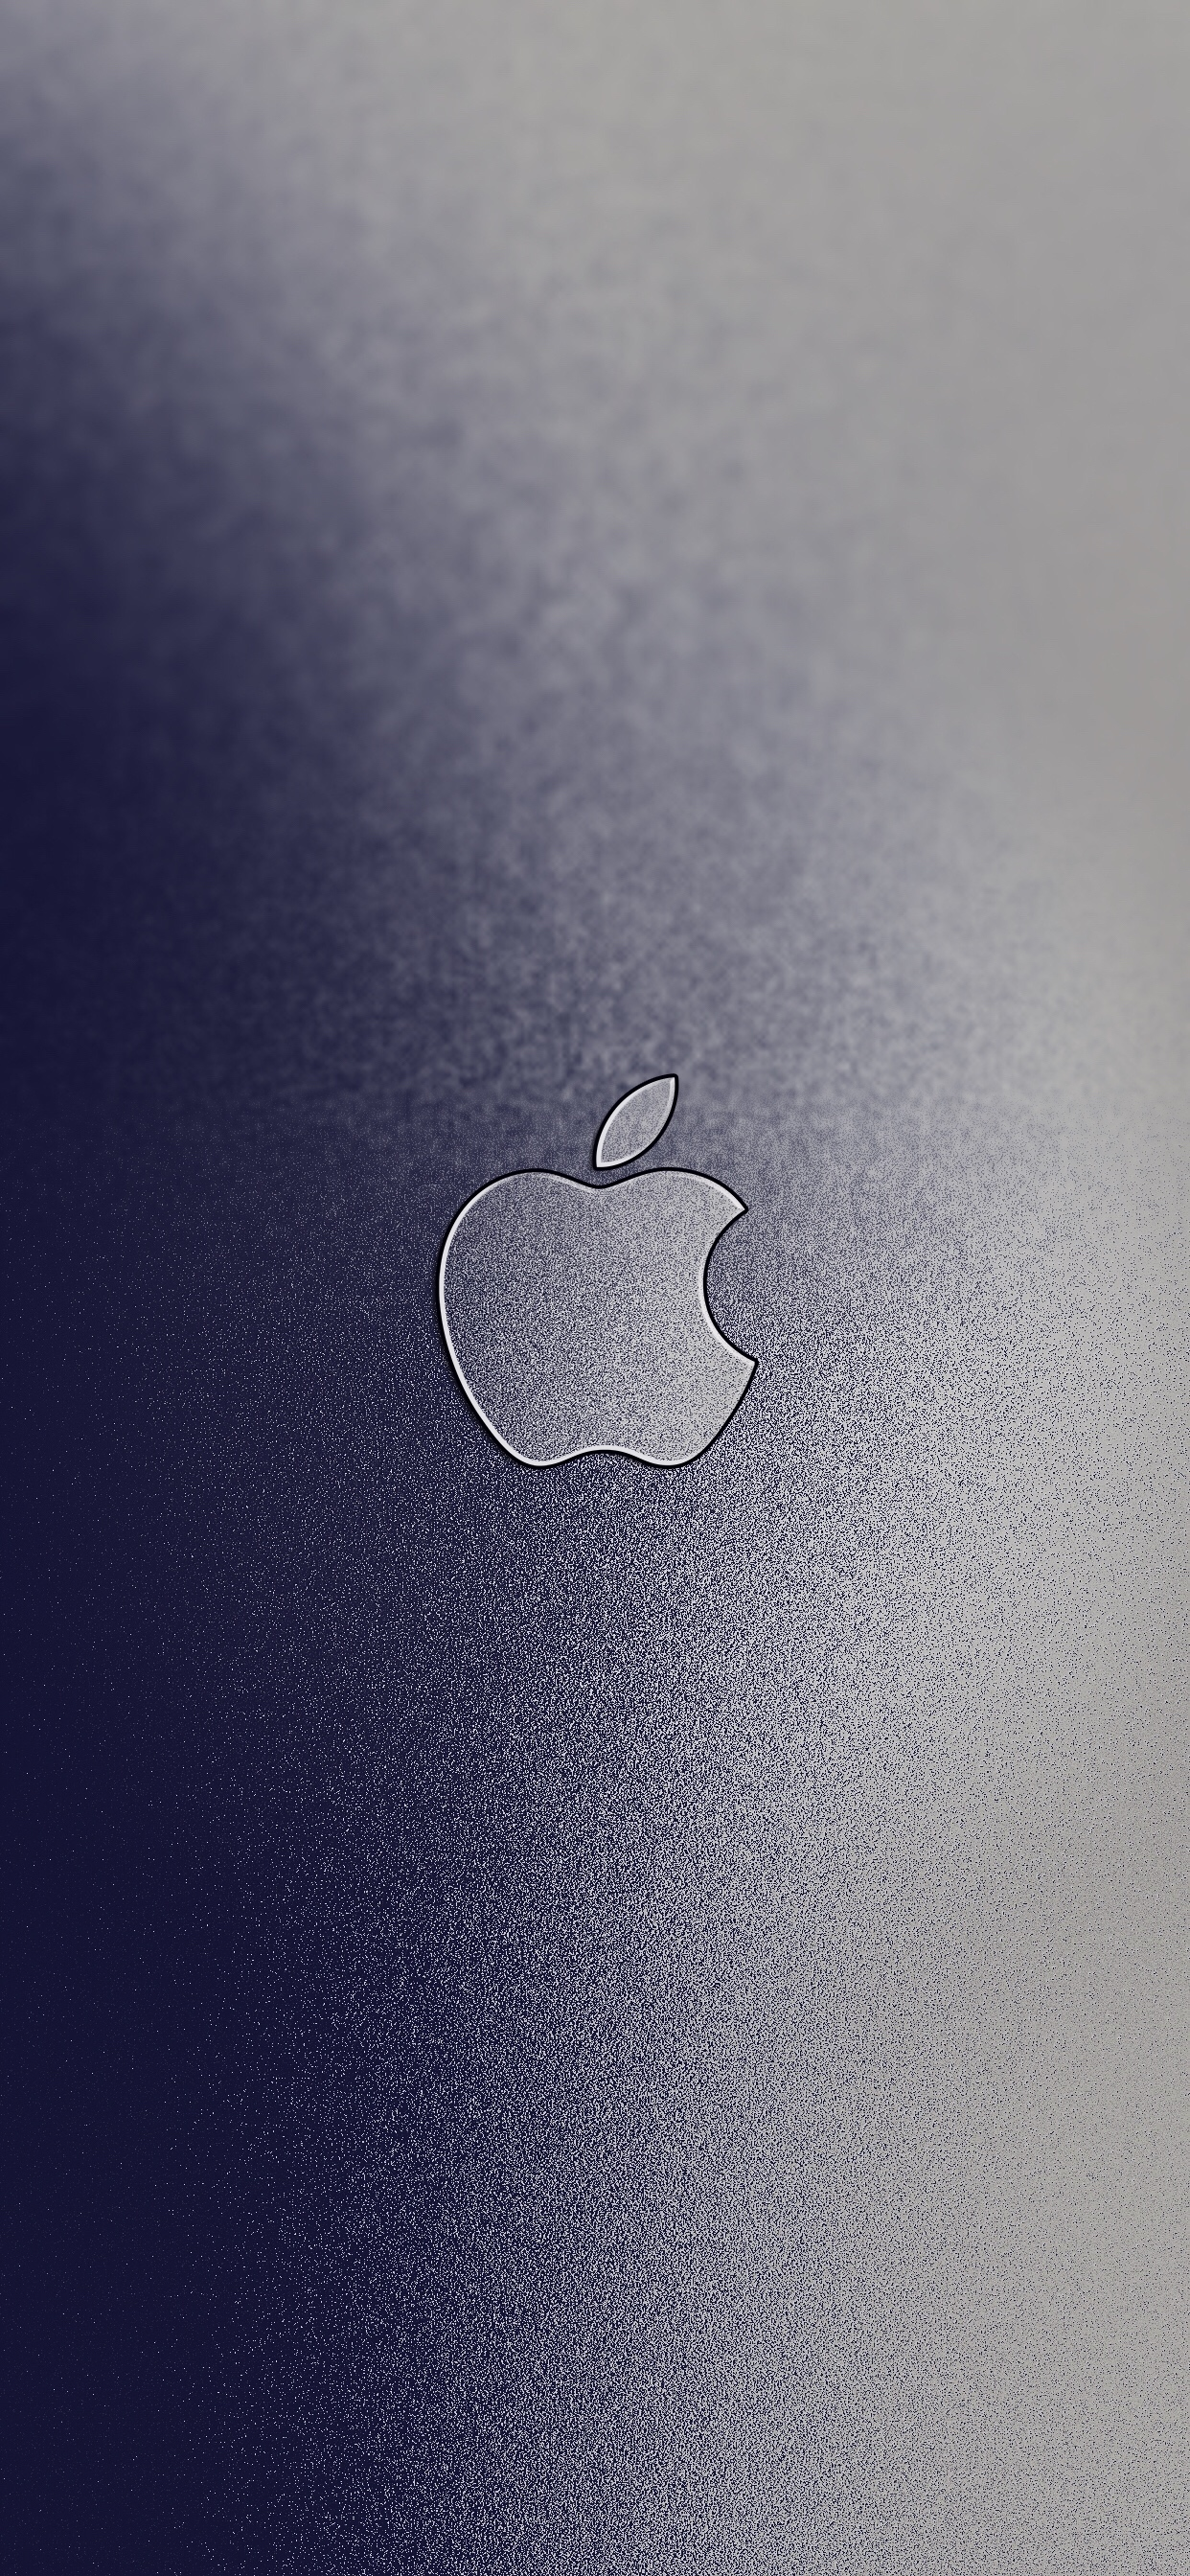 v6 with Apple Logo iPhone XS Max wallpaper ar72014